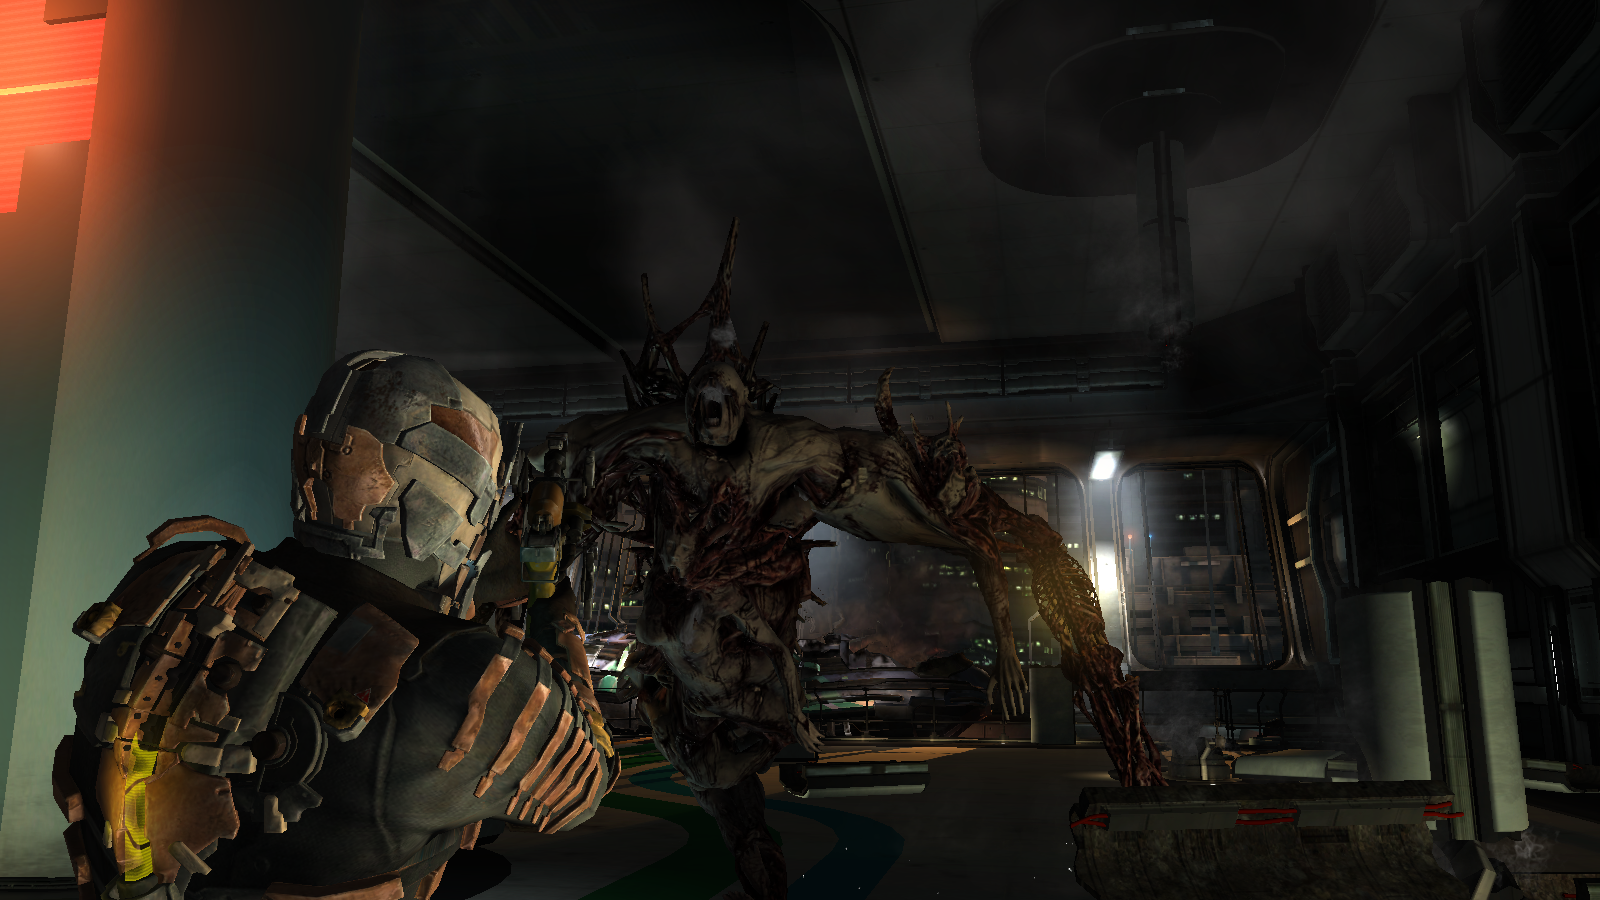 ... dead space 2 wallpaper hd widescreen game wallpaper backgrounds